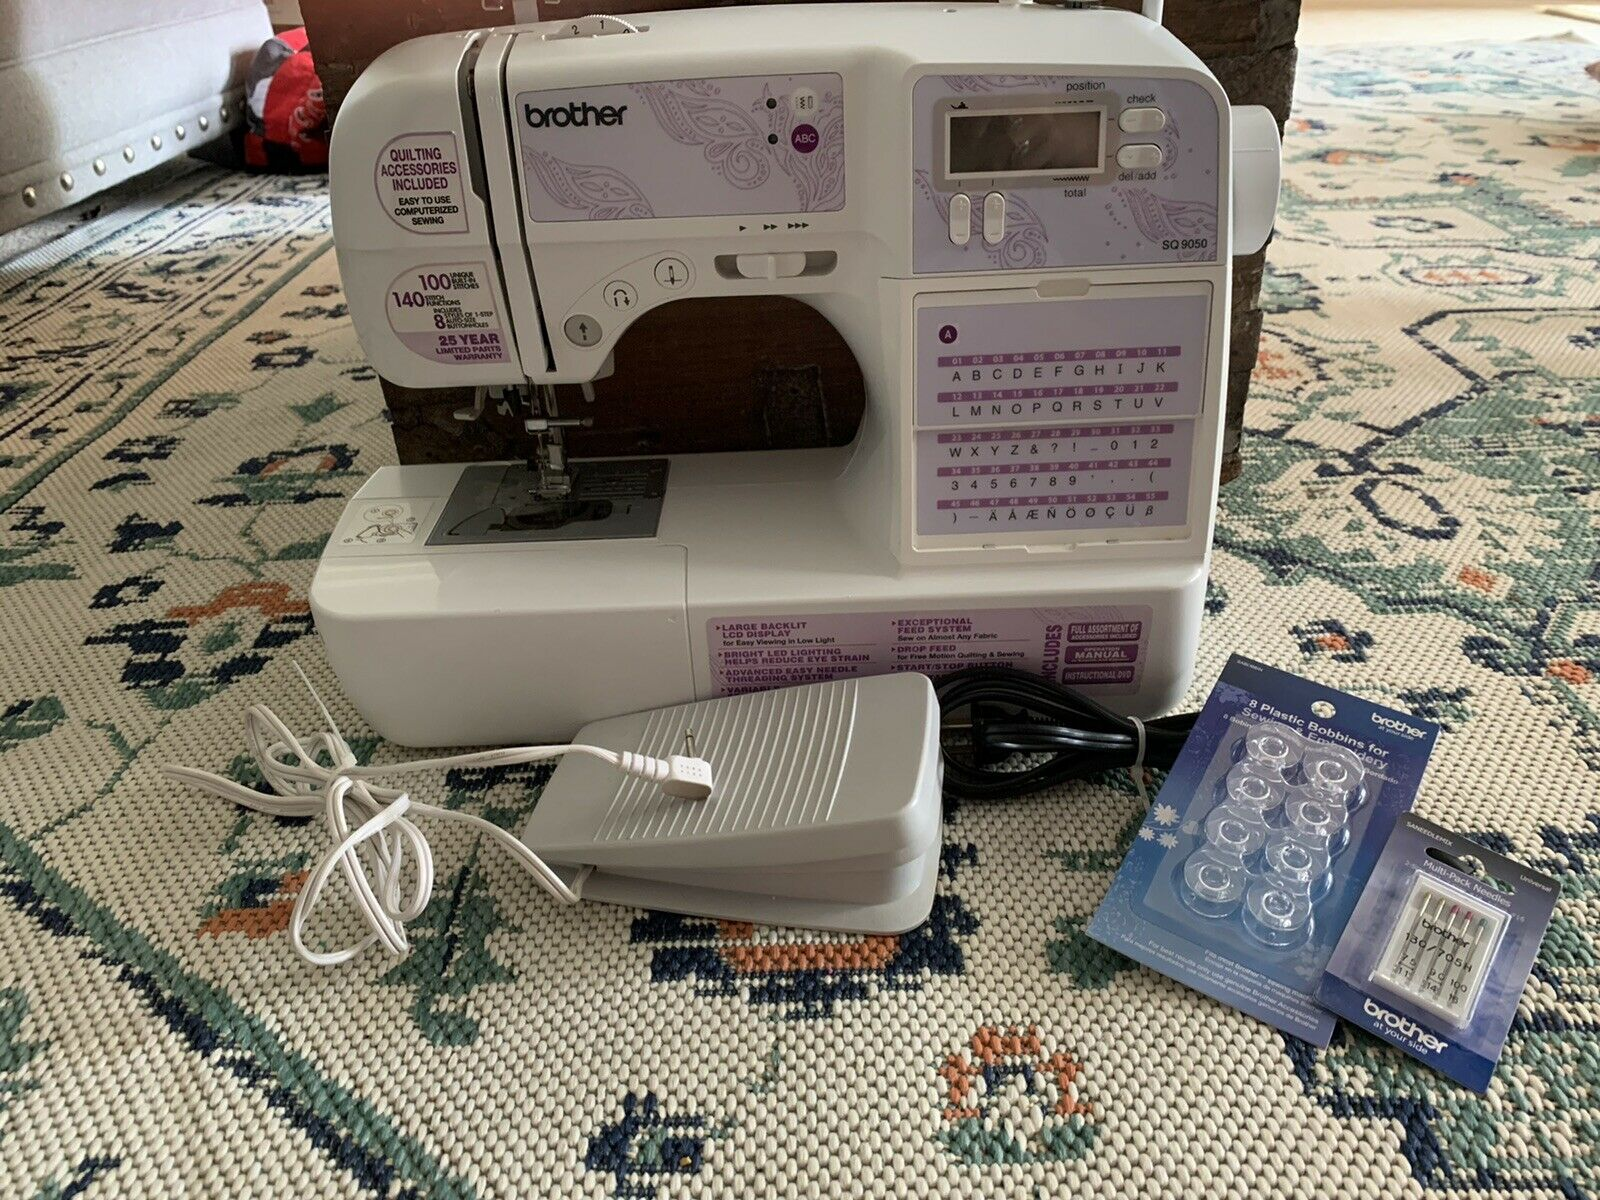 s l1600 - Brother SQ9050 Computerized Sewing Machine